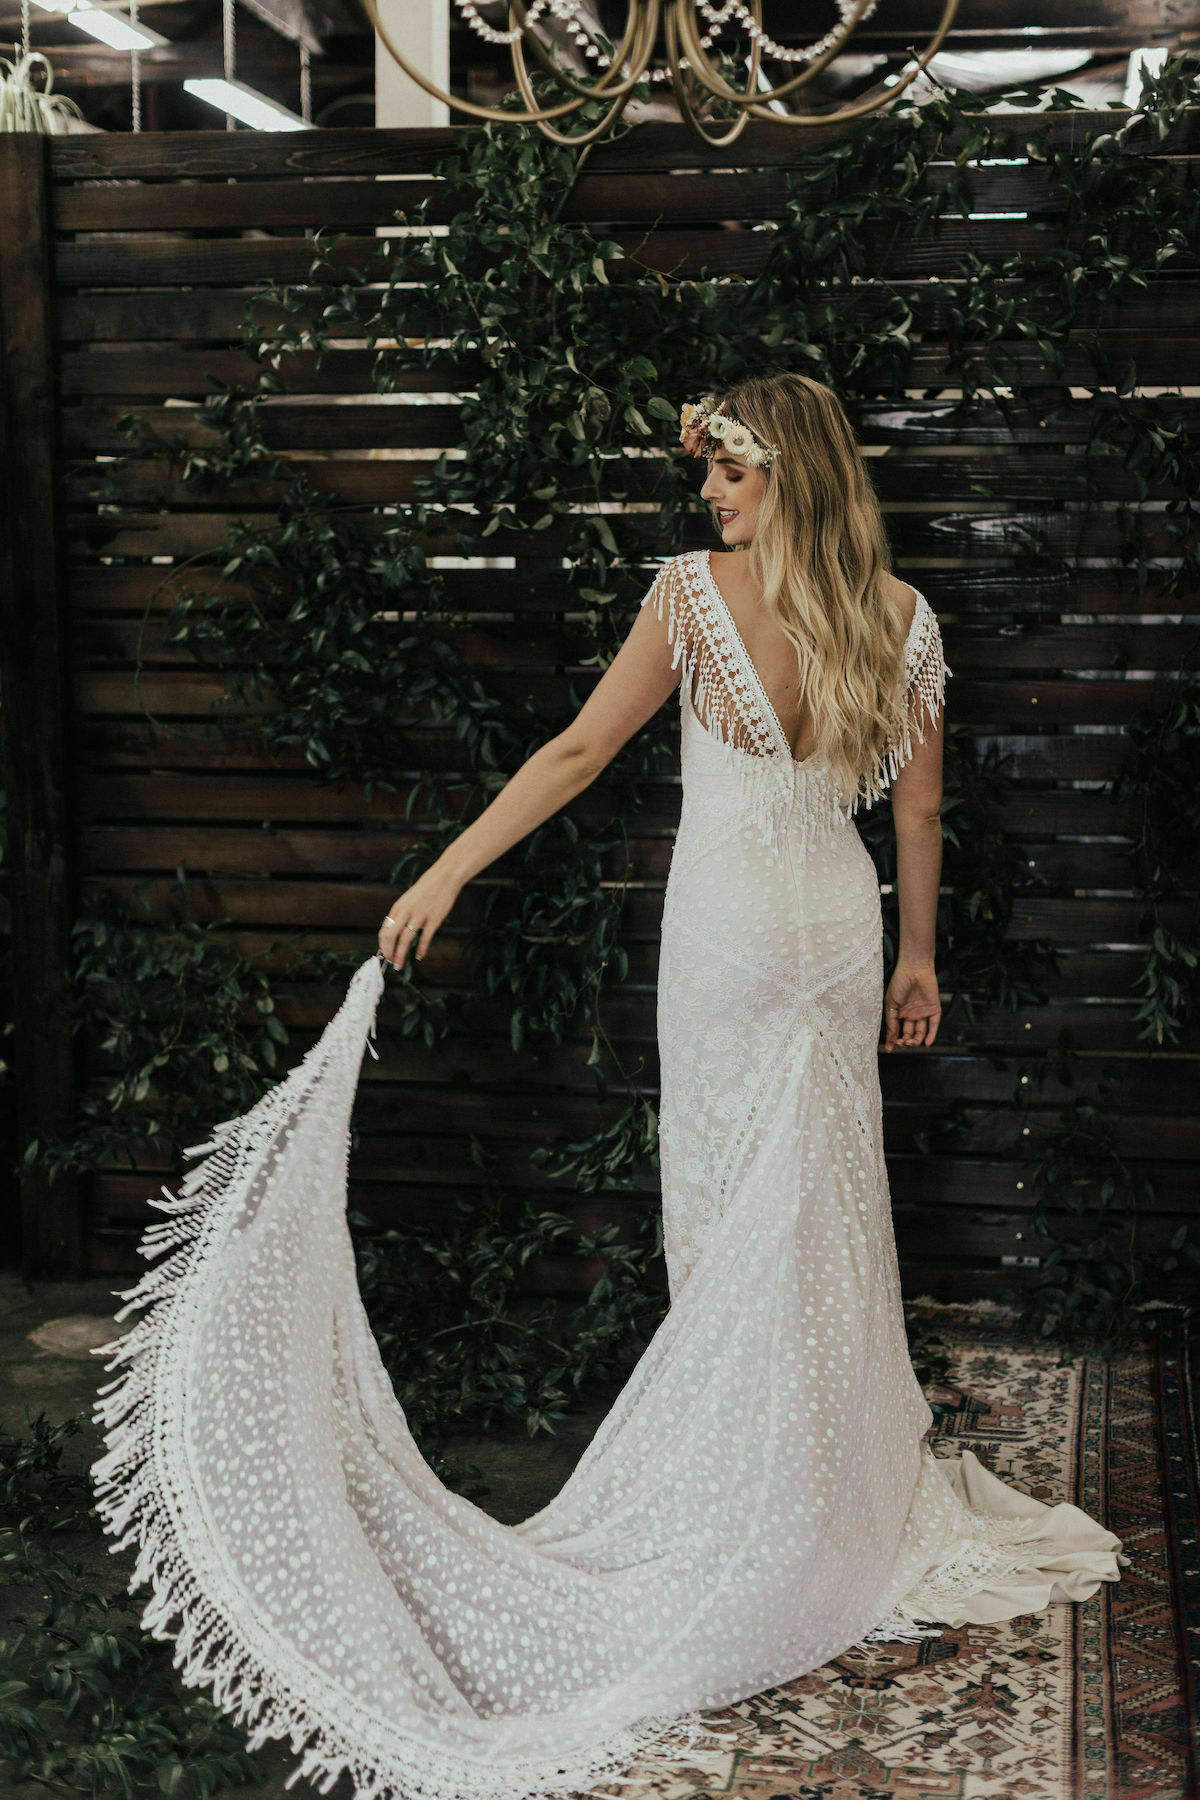 Dreamers-and-Lovers-Jenny-Fringe-3D-Lace-Wedding-Dress